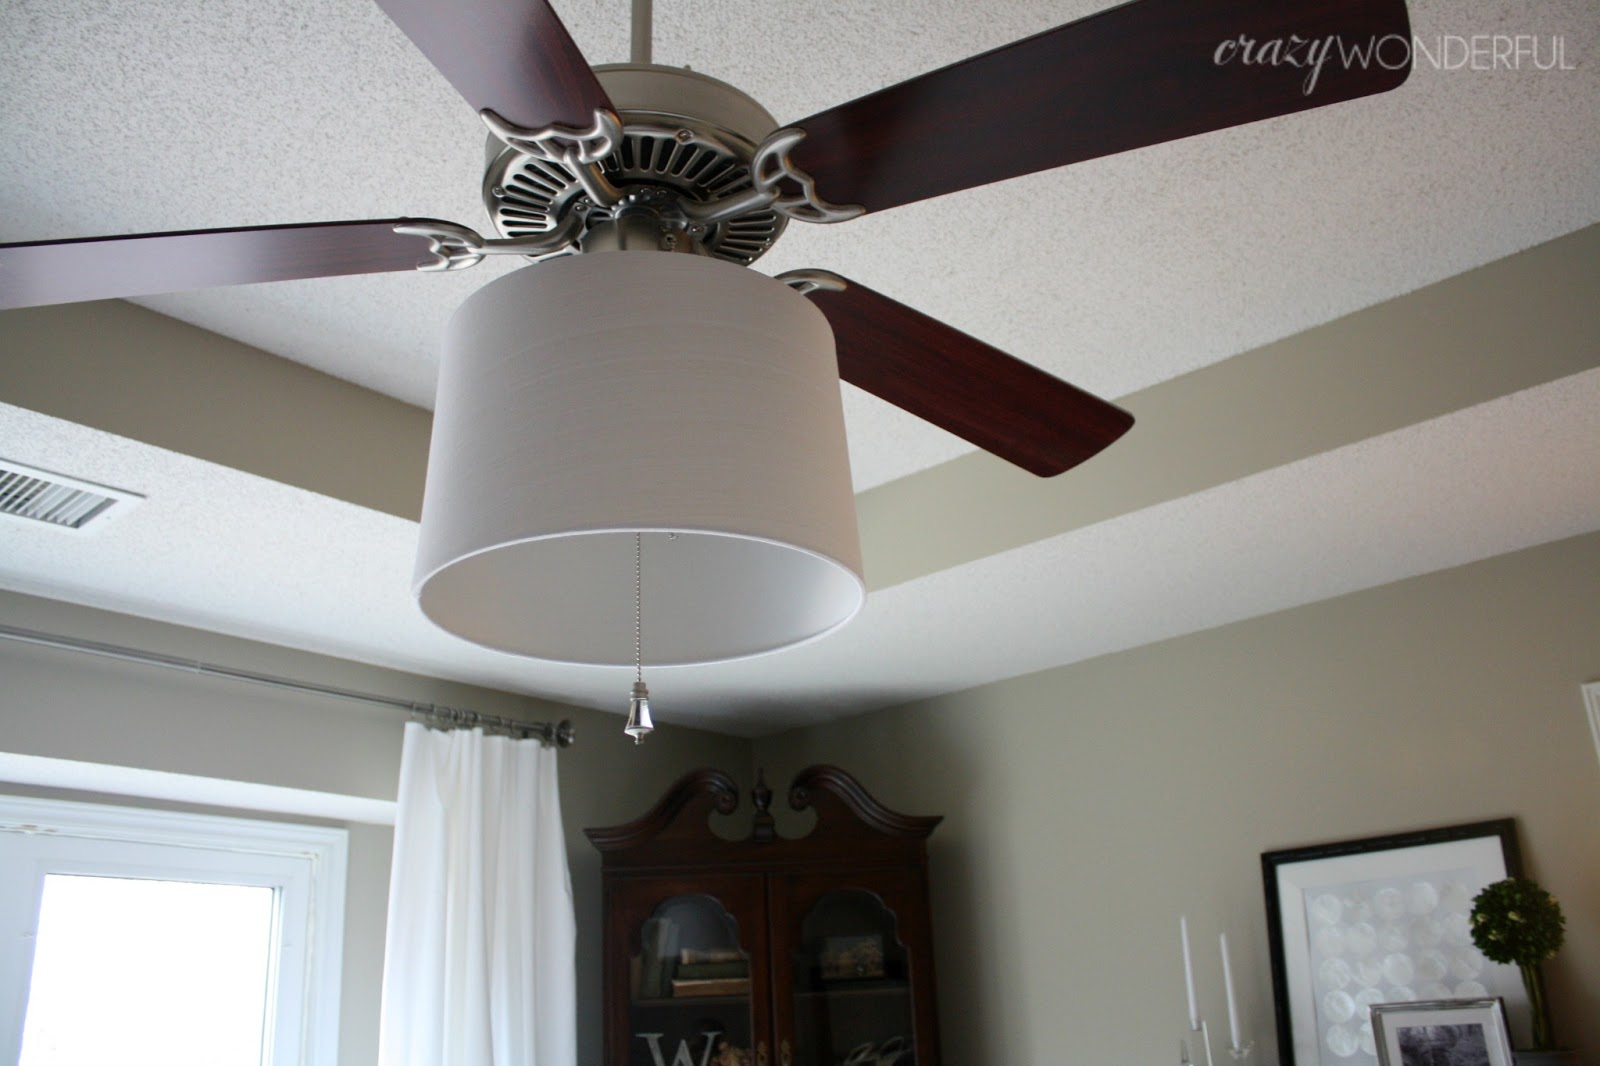 Adding a drum shade to a ceiling fan crazy wonderful adding a drum shade to a ceiling fan aloadofball Choice Image